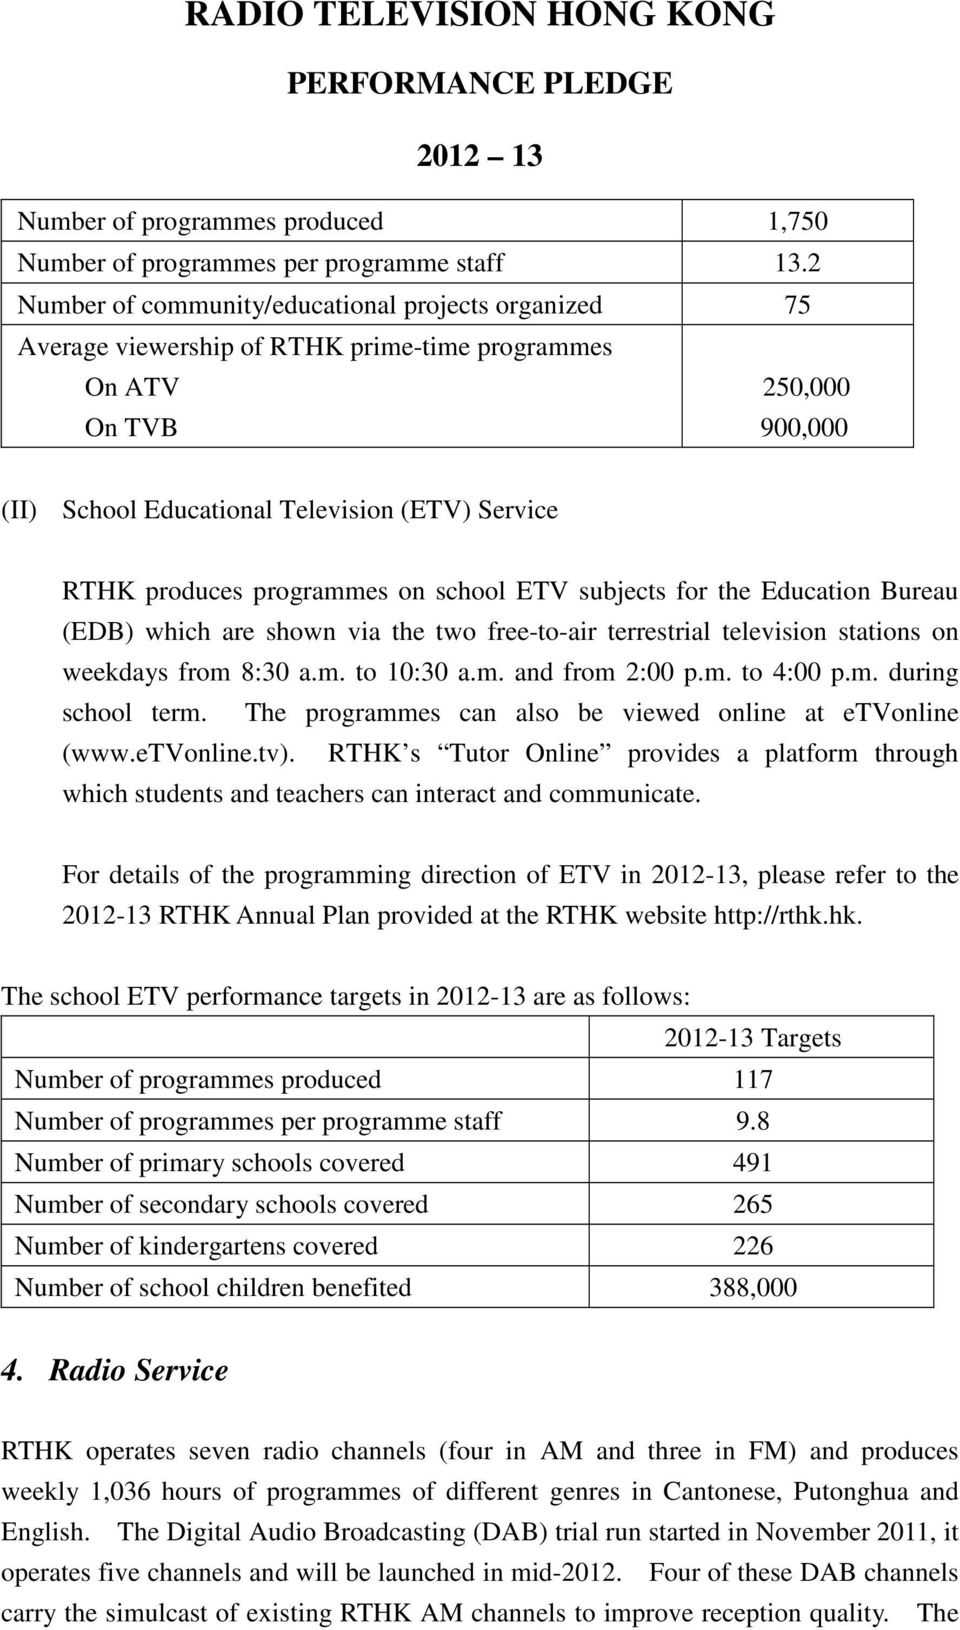 programmes on school ETV subjects for the Education Bureau (EDB) which are shown via the two free-to-air terrestrial television stations on weekdays from 8:30 a.m. to 10:30 a.m. and from 2:00 p.m. to 4:00 p.